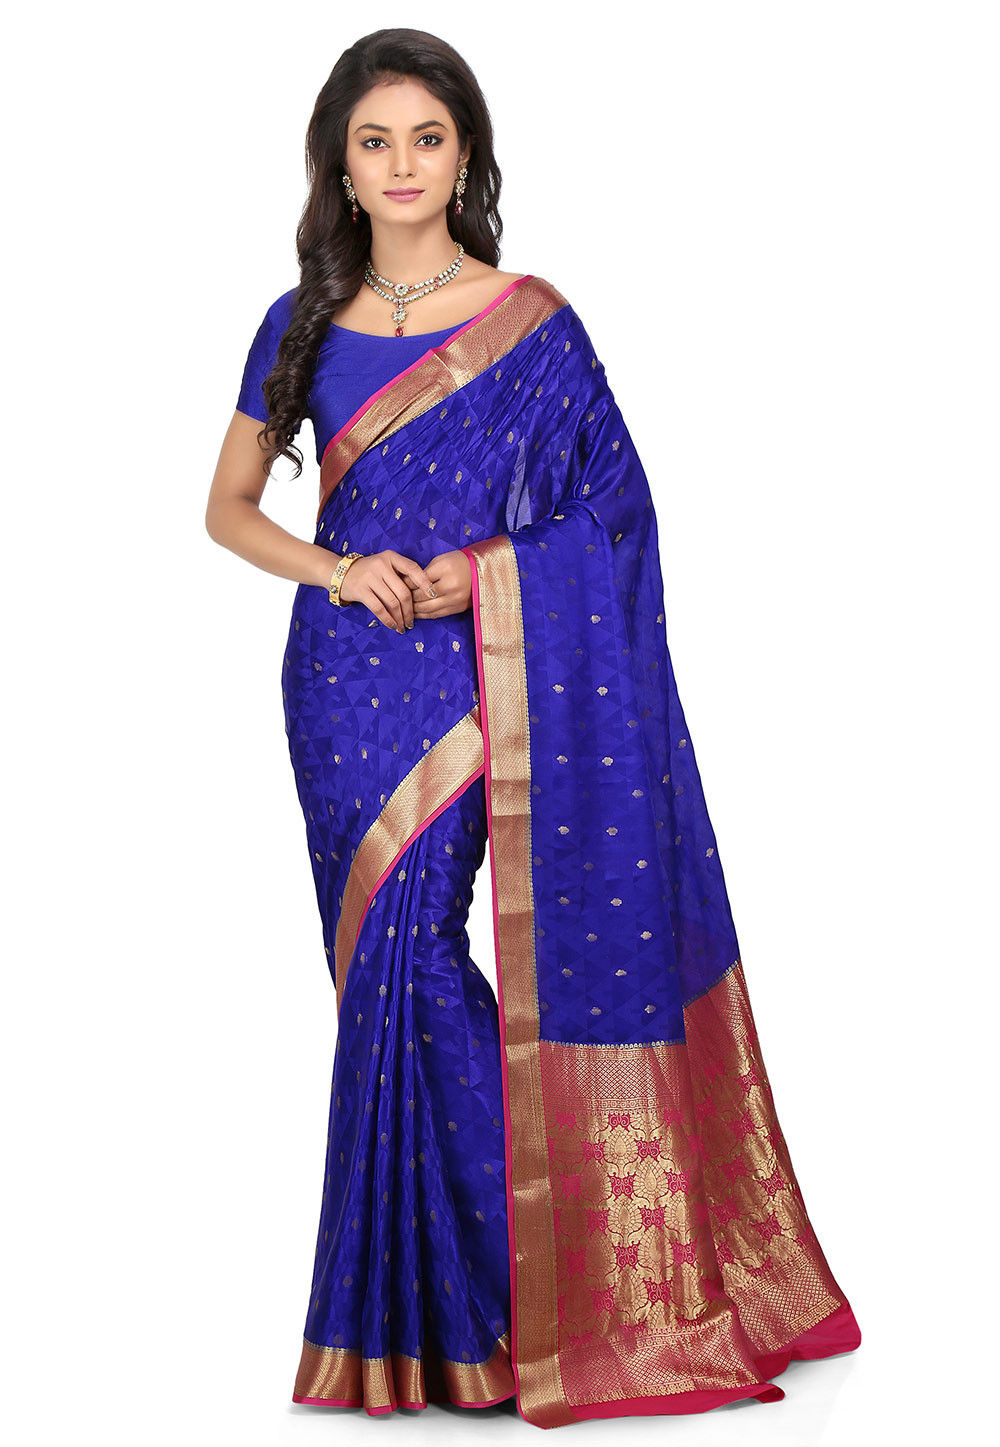 Woven Pure Mysore Silk Saree in Royal Blue